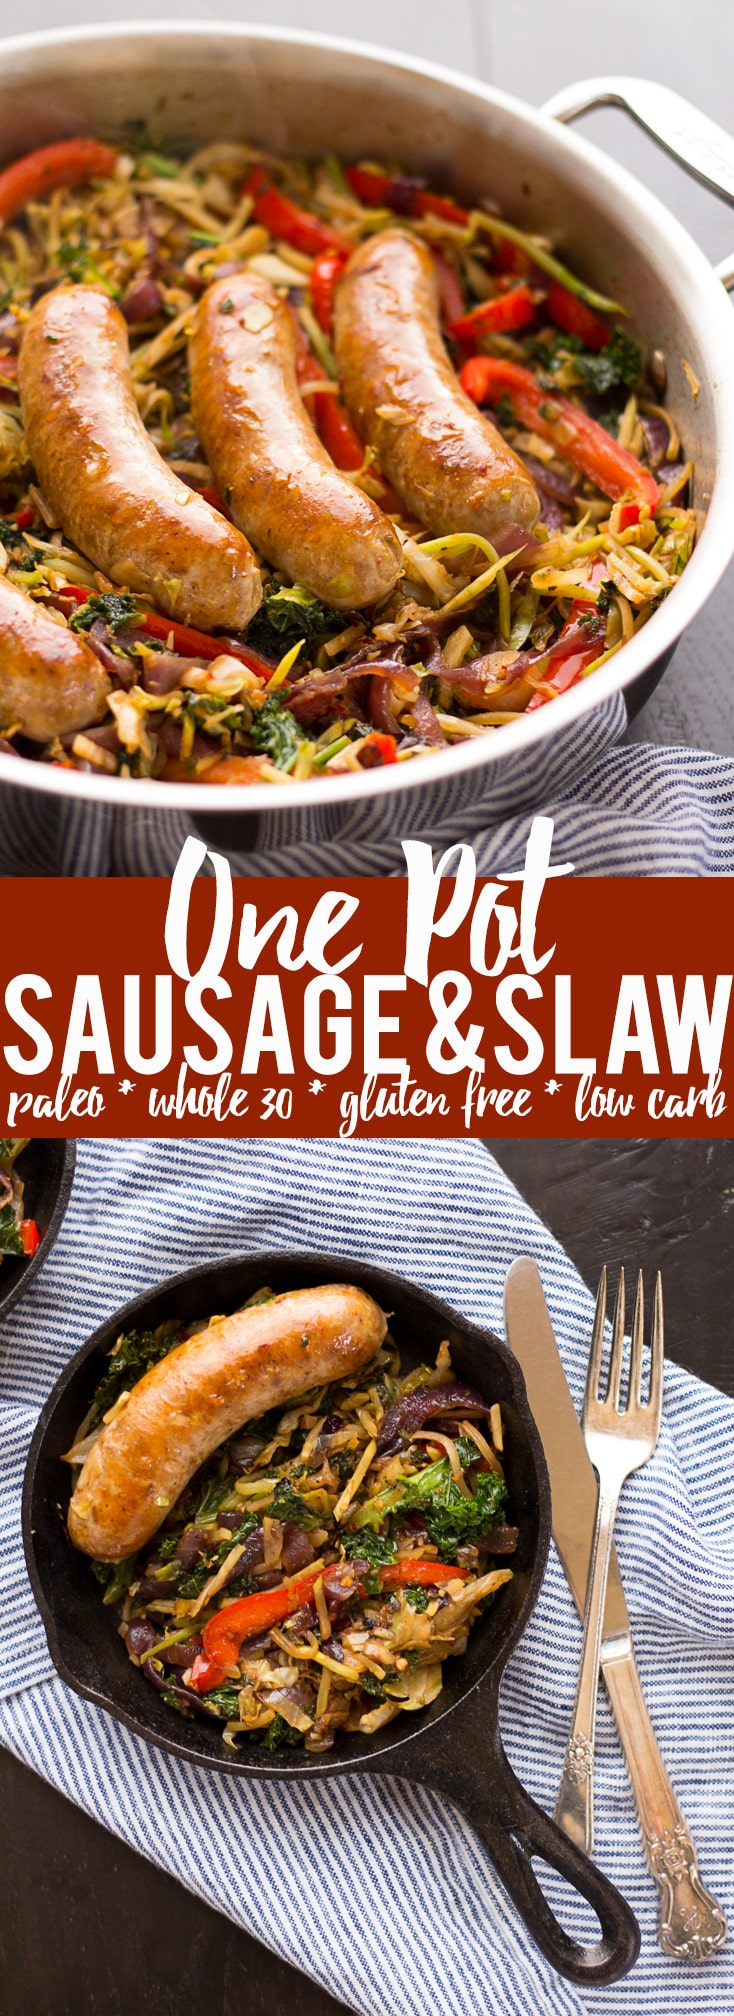 This One Pot Paleo Sausage and Slaw Skillet the perfect weeknight dinner! A little shortcut makes it super quick and easy, plus it is paleo, whole 30, gluten free and low carb.